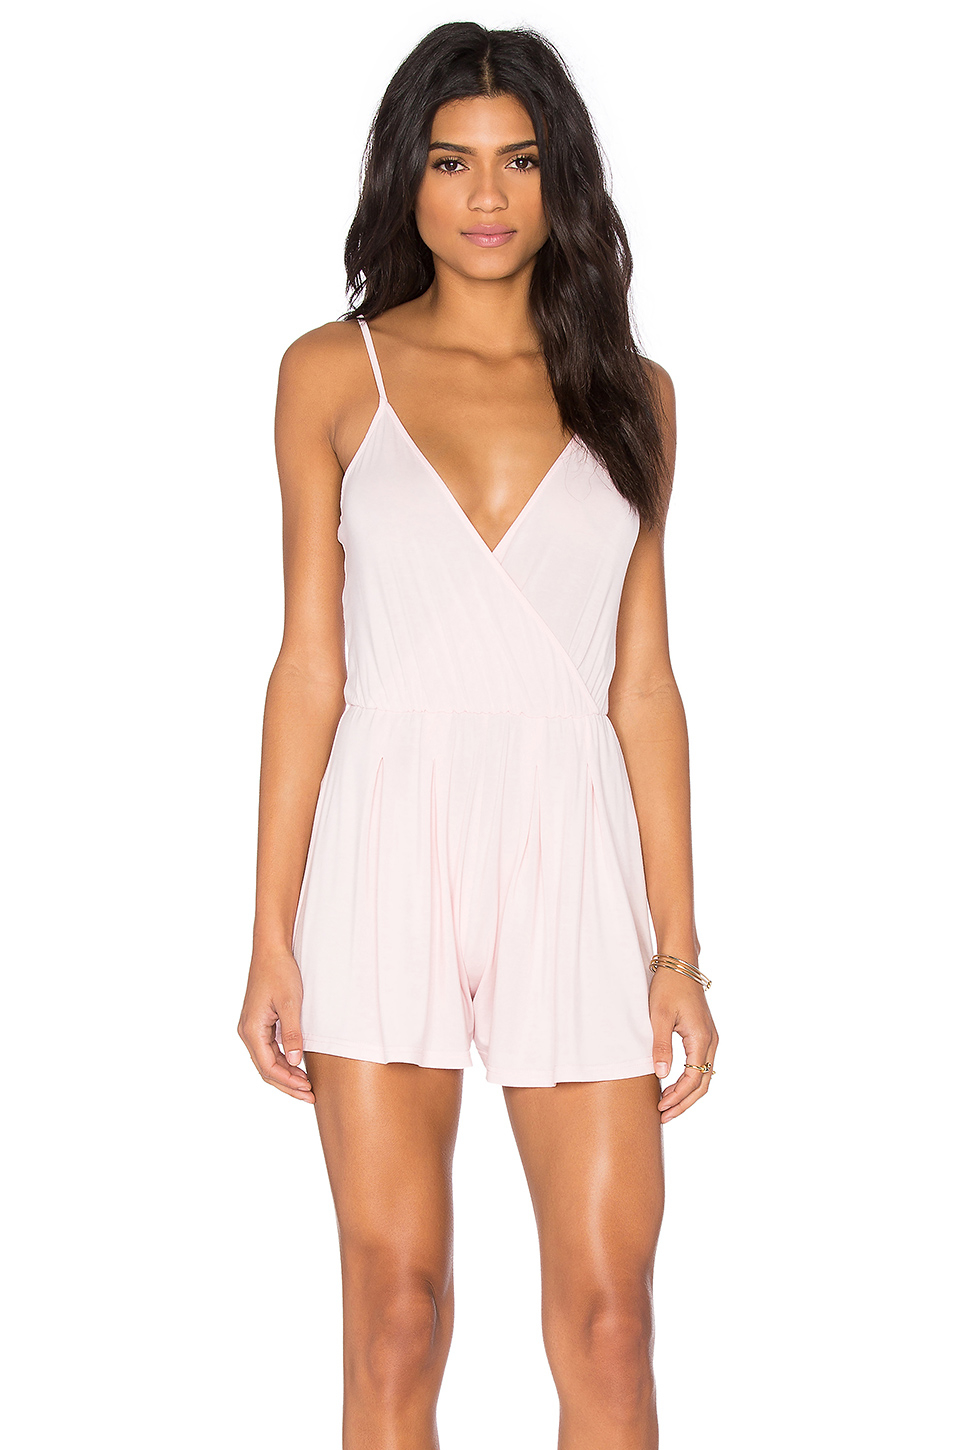 Blq basiq Sleeveless Romper in Pink | Lyst